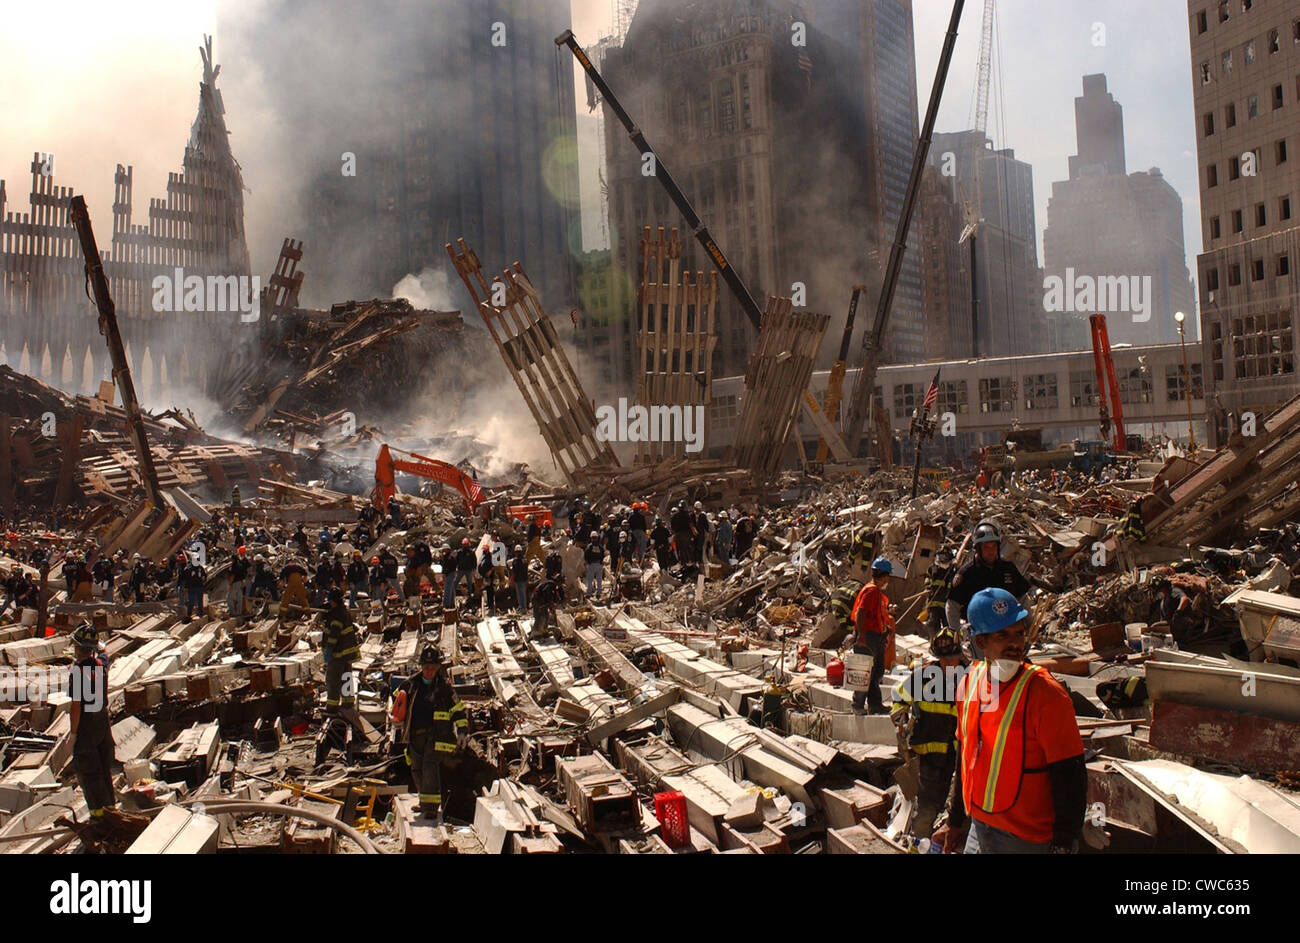 Rescue workers and firefighters in the wreckage at the World Trade Center two days after the 9-11 terrorist attacks - Stock Image